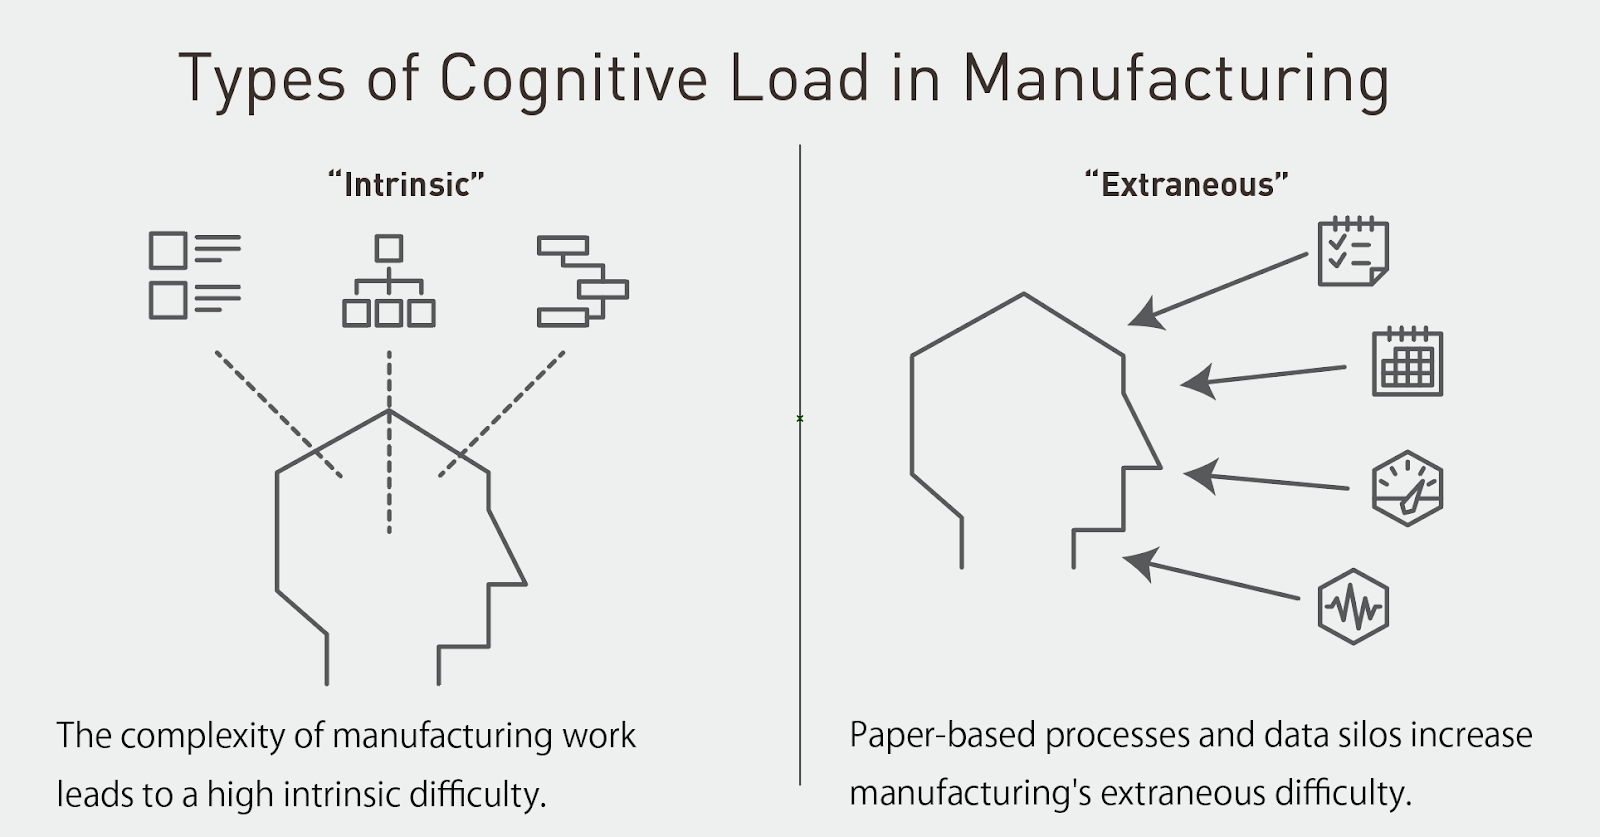 Types of cognitive load as they relate to manufacturing